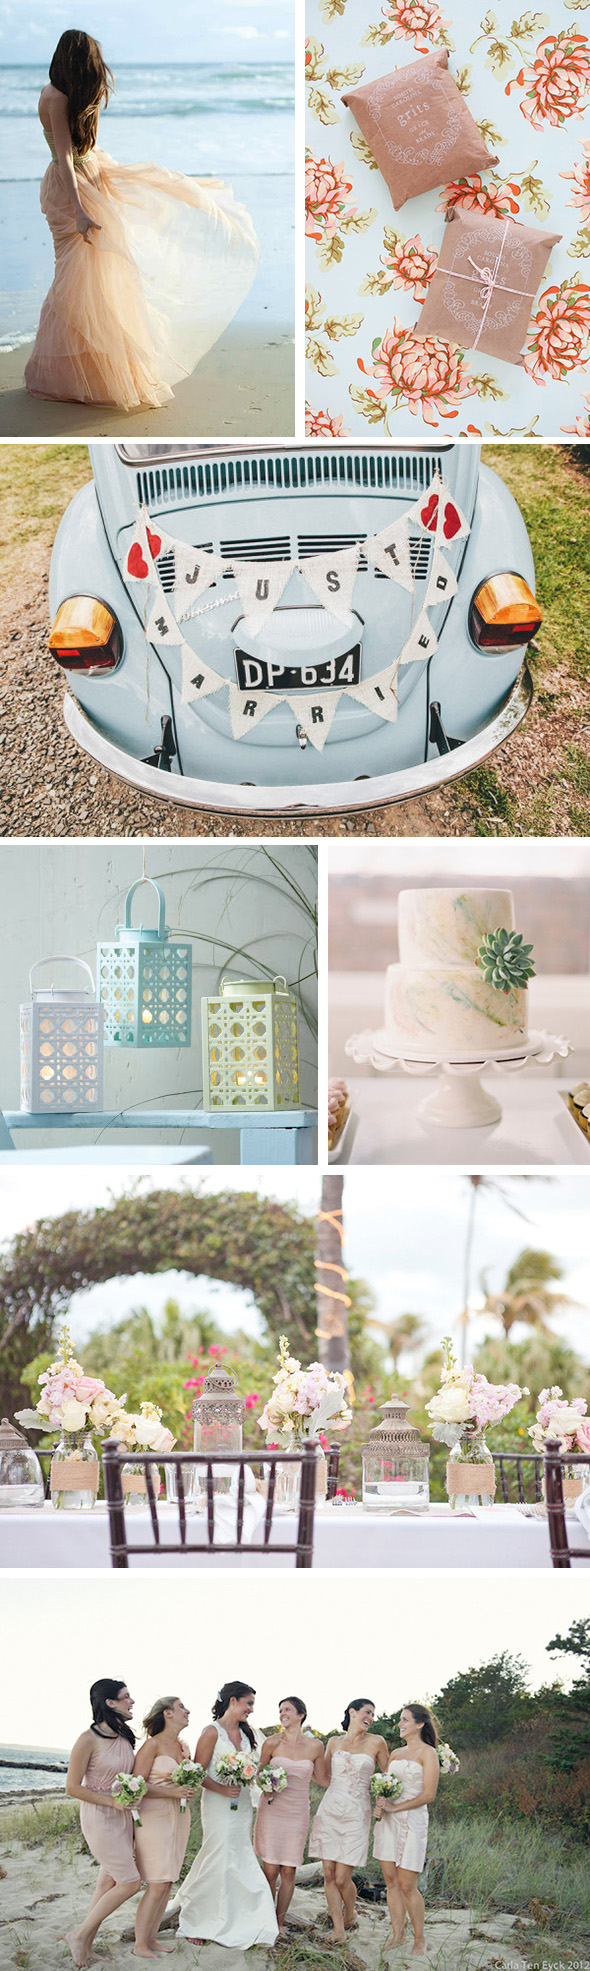 pastel beach weddings Pastel Weddings on the Beach